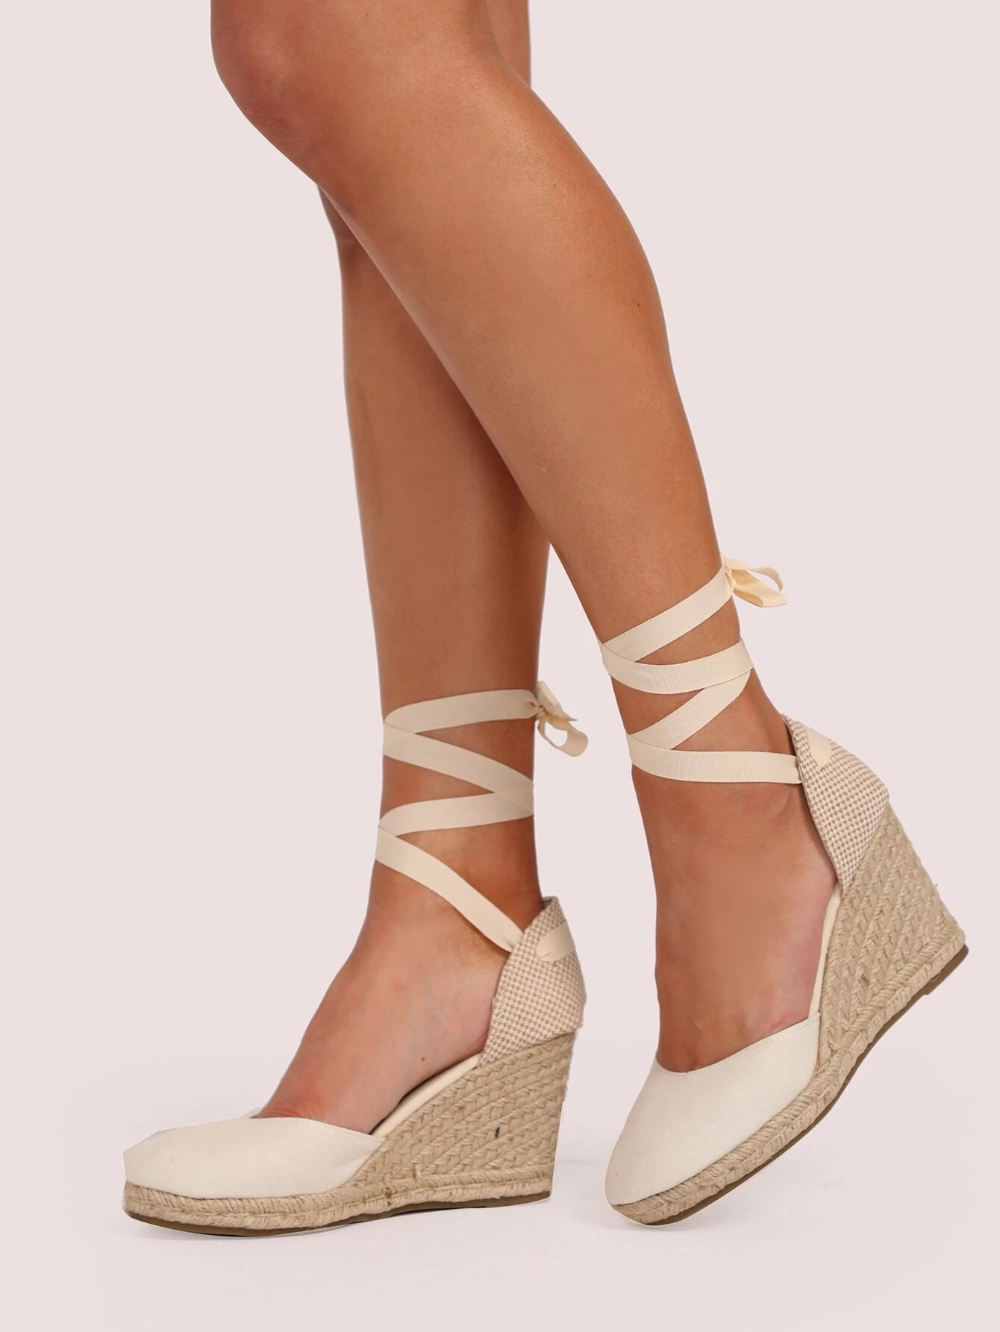 closed toe tie up wedges